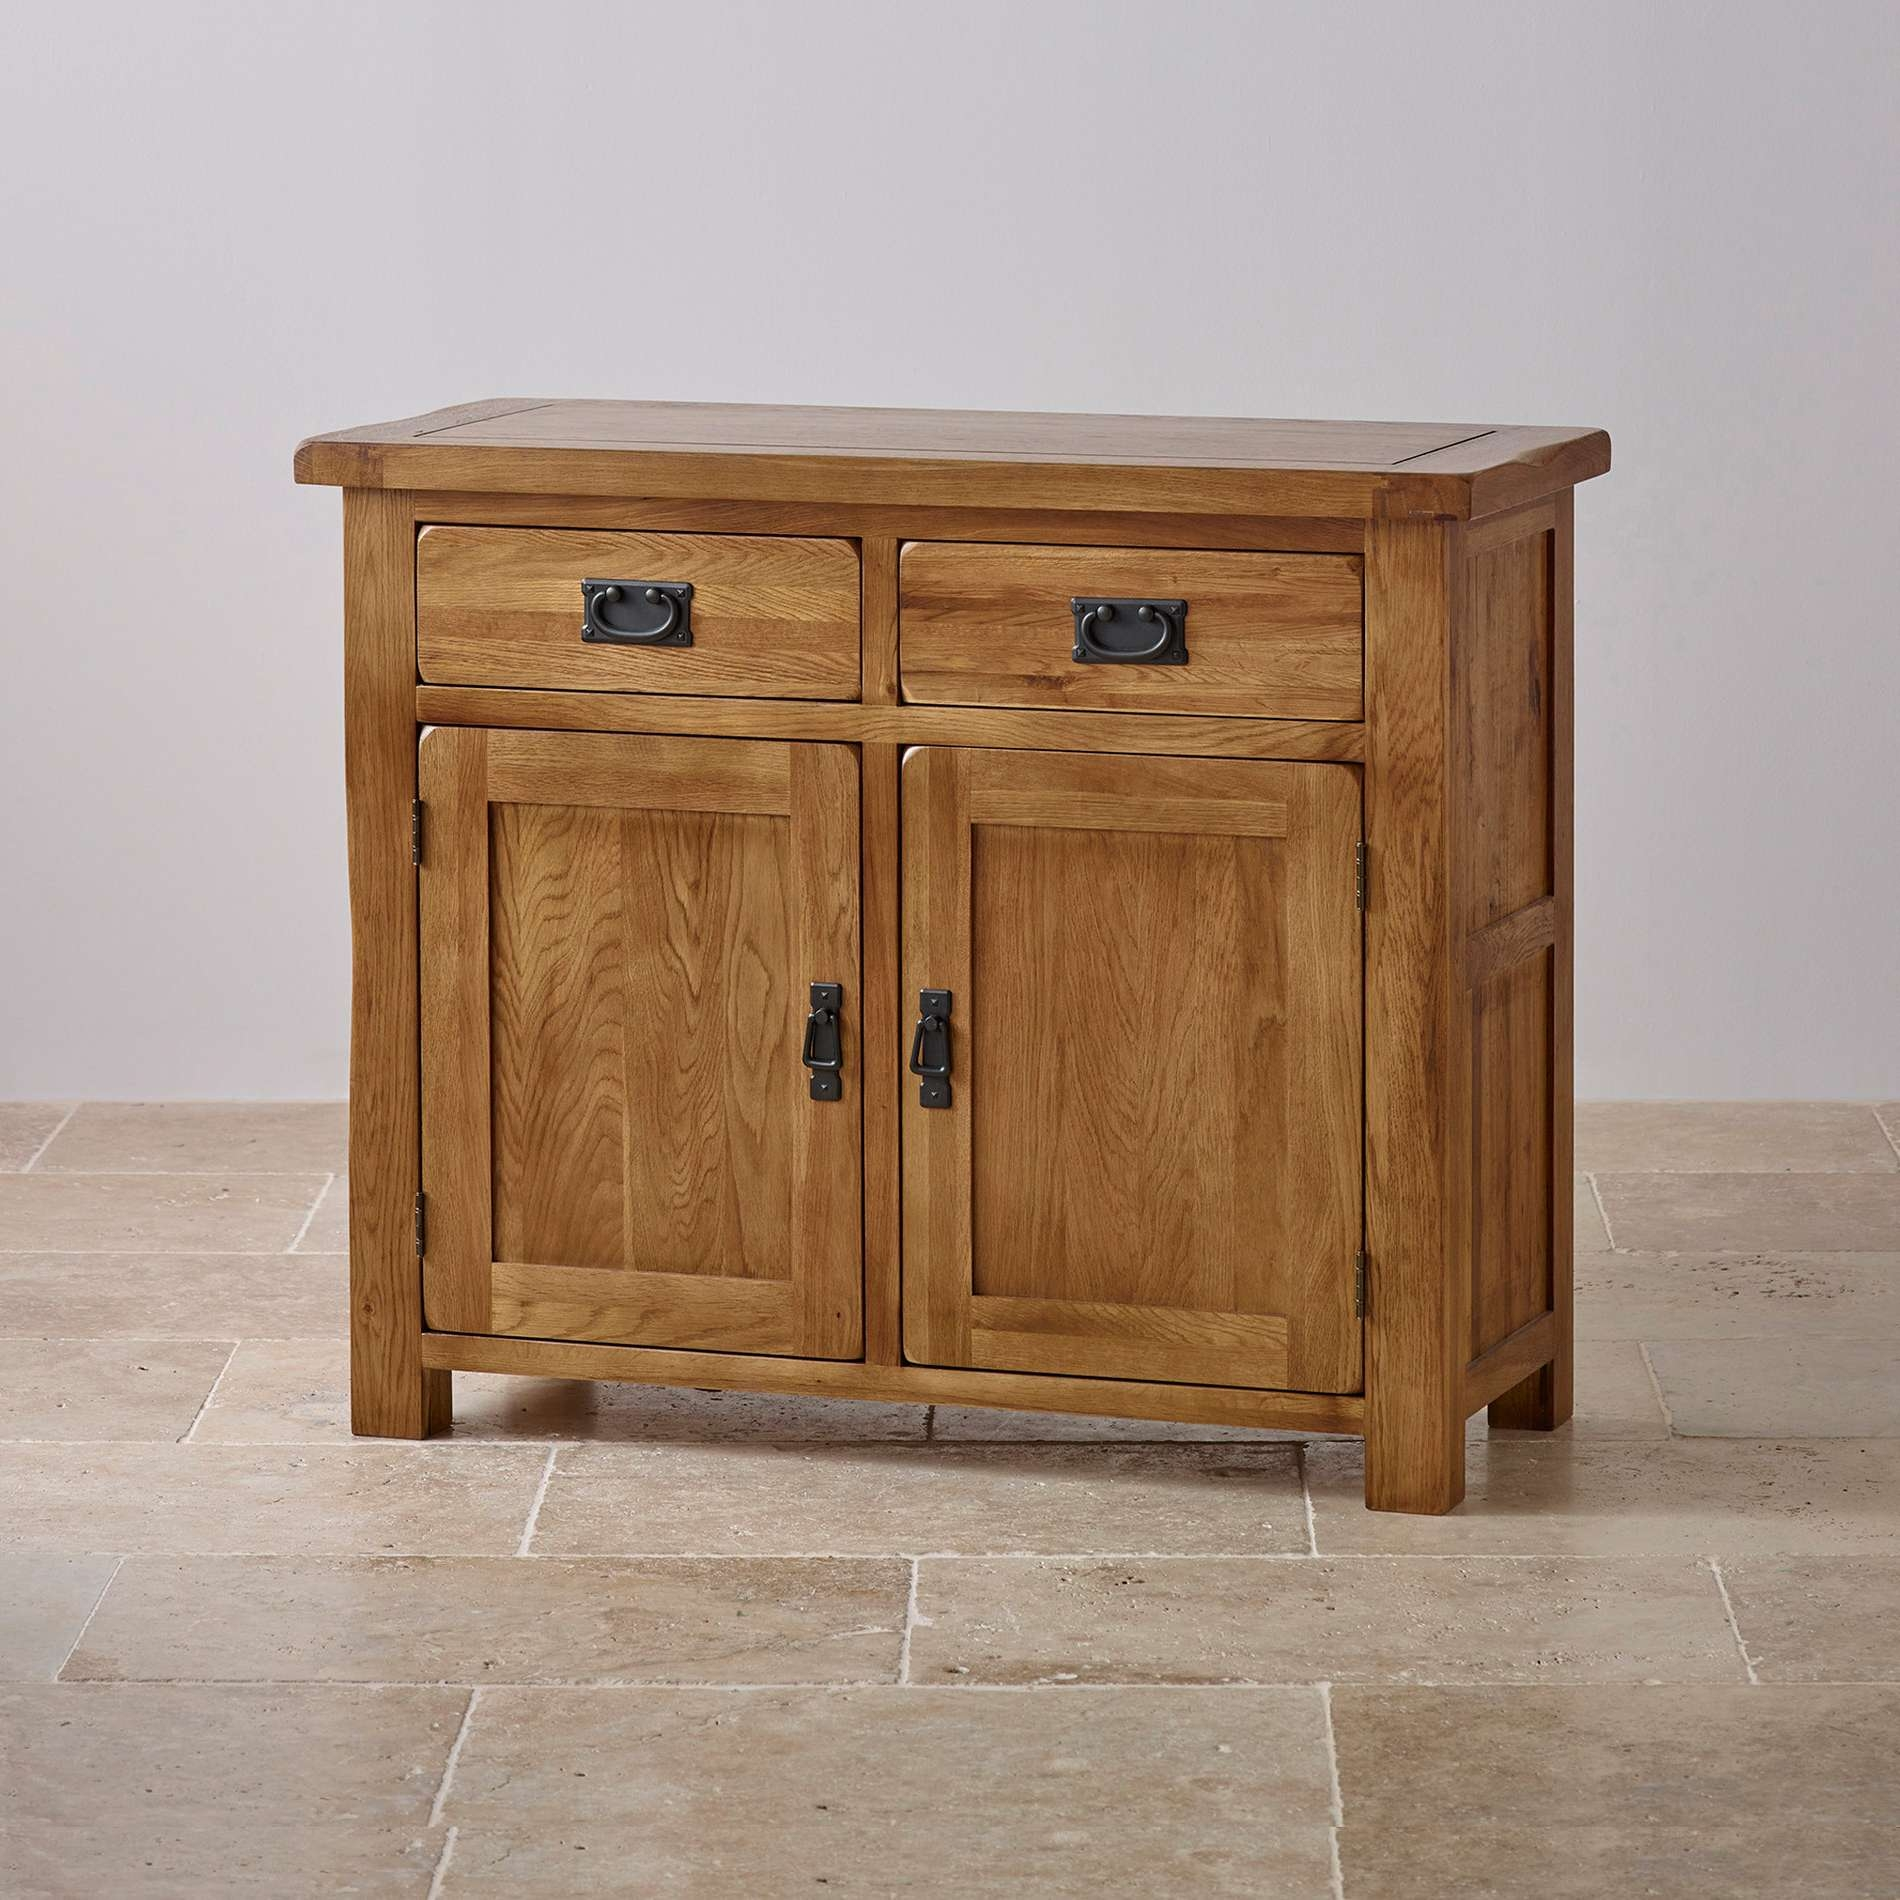 Original Rustic Solid Oak Small Sideboard | Oak Furniture Land For Rustic Sideboards Furniture (View 7 of 20)